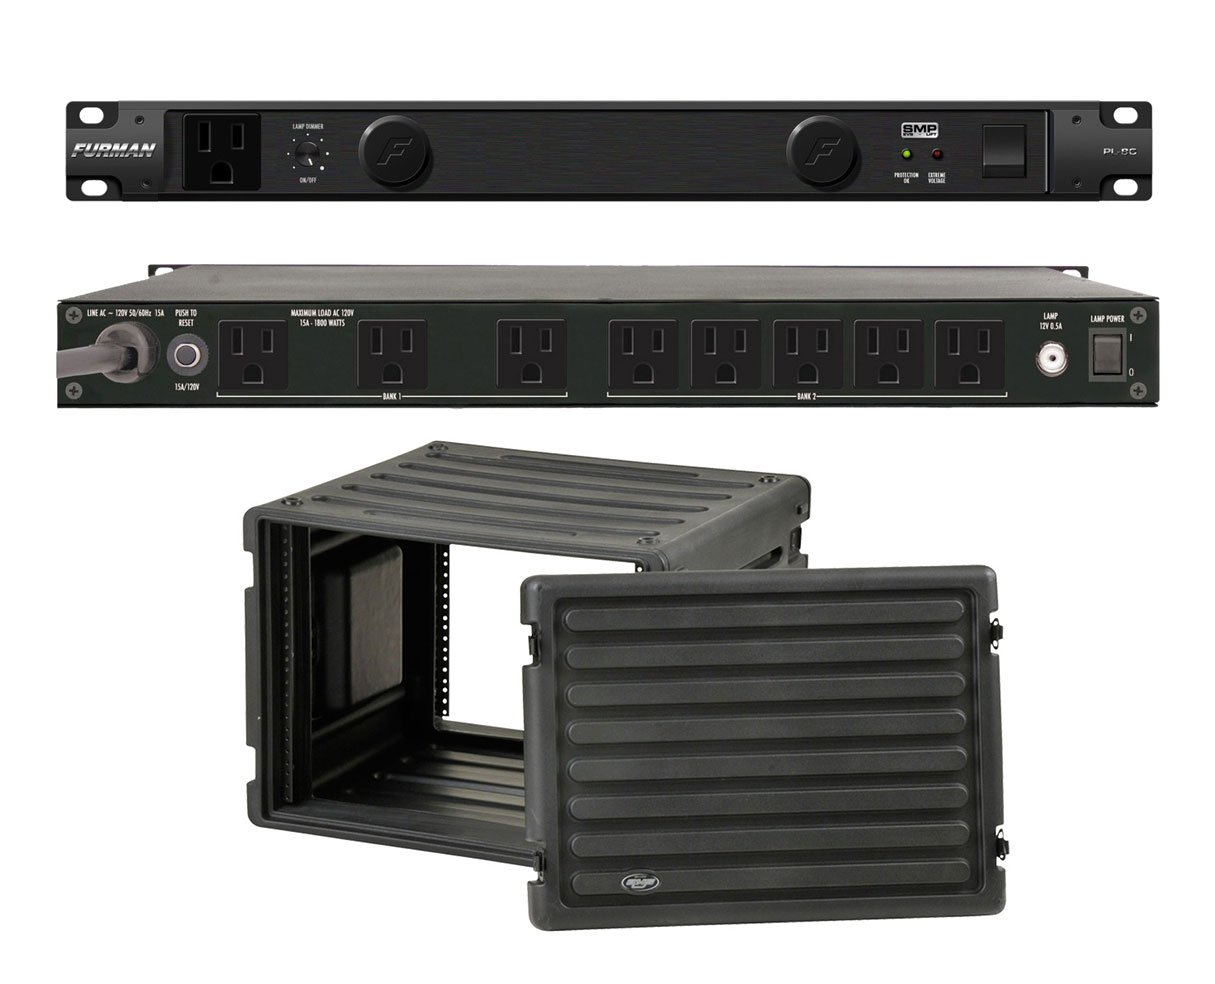 Furman PL-8 C Rack Mount Power Conditioner + SKB 1SKB-R8U Roto Molded 8U Rack